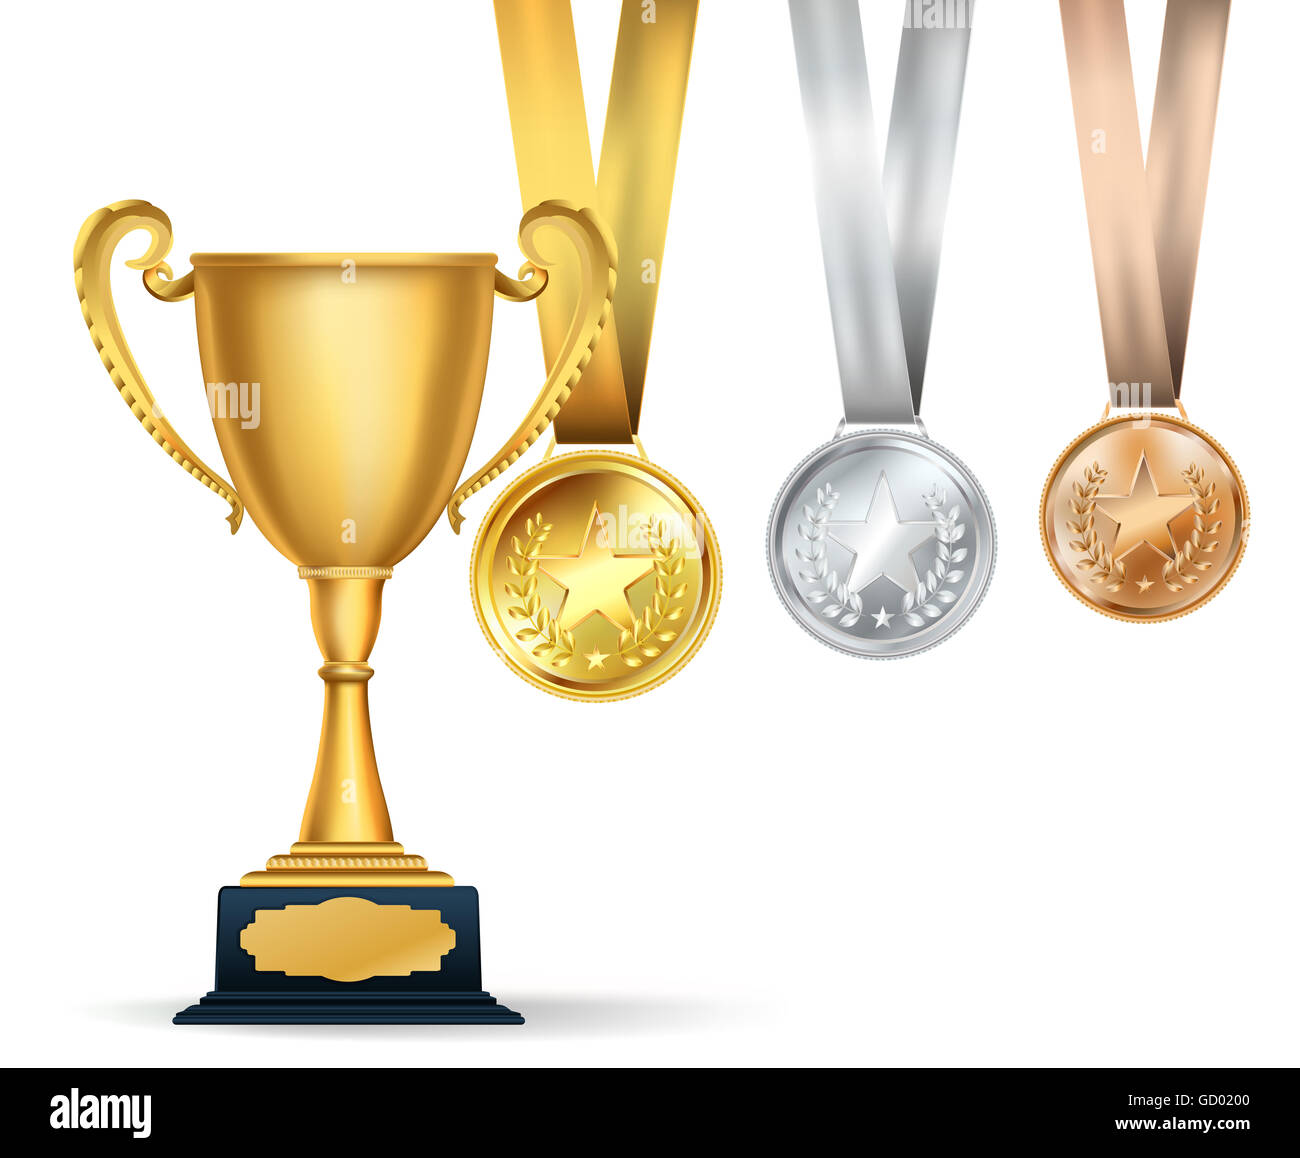 Golden trophy cup and set of medals with ribbons on white background